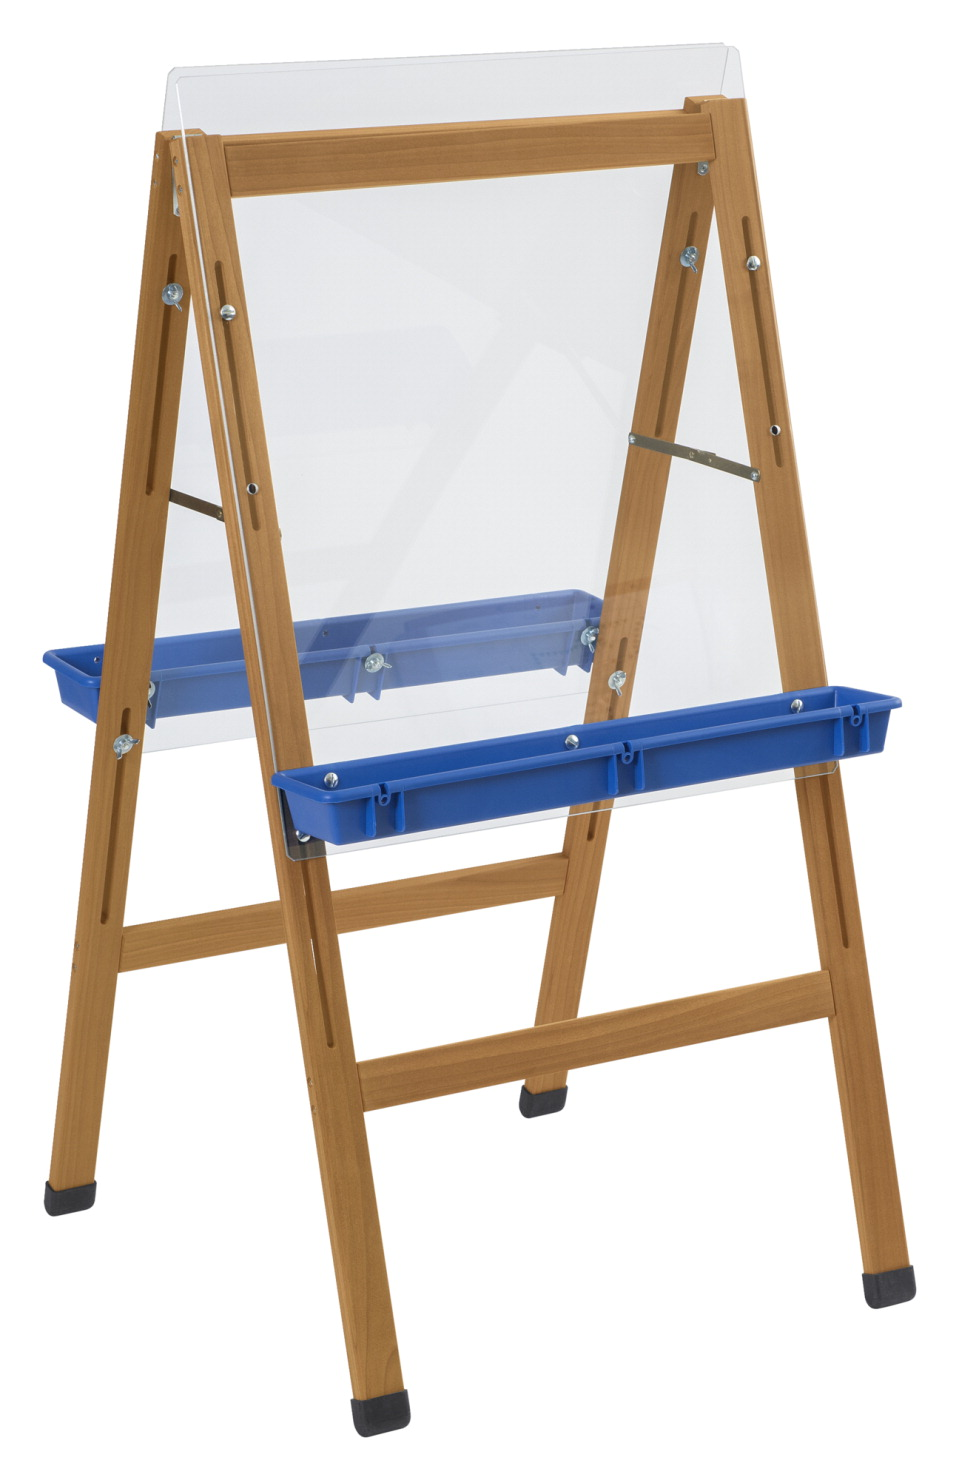 Childcraft Outdoor Easel, 2 Blue Paint Trays, 24 x 26-5/8  x 44-1/2 Inches